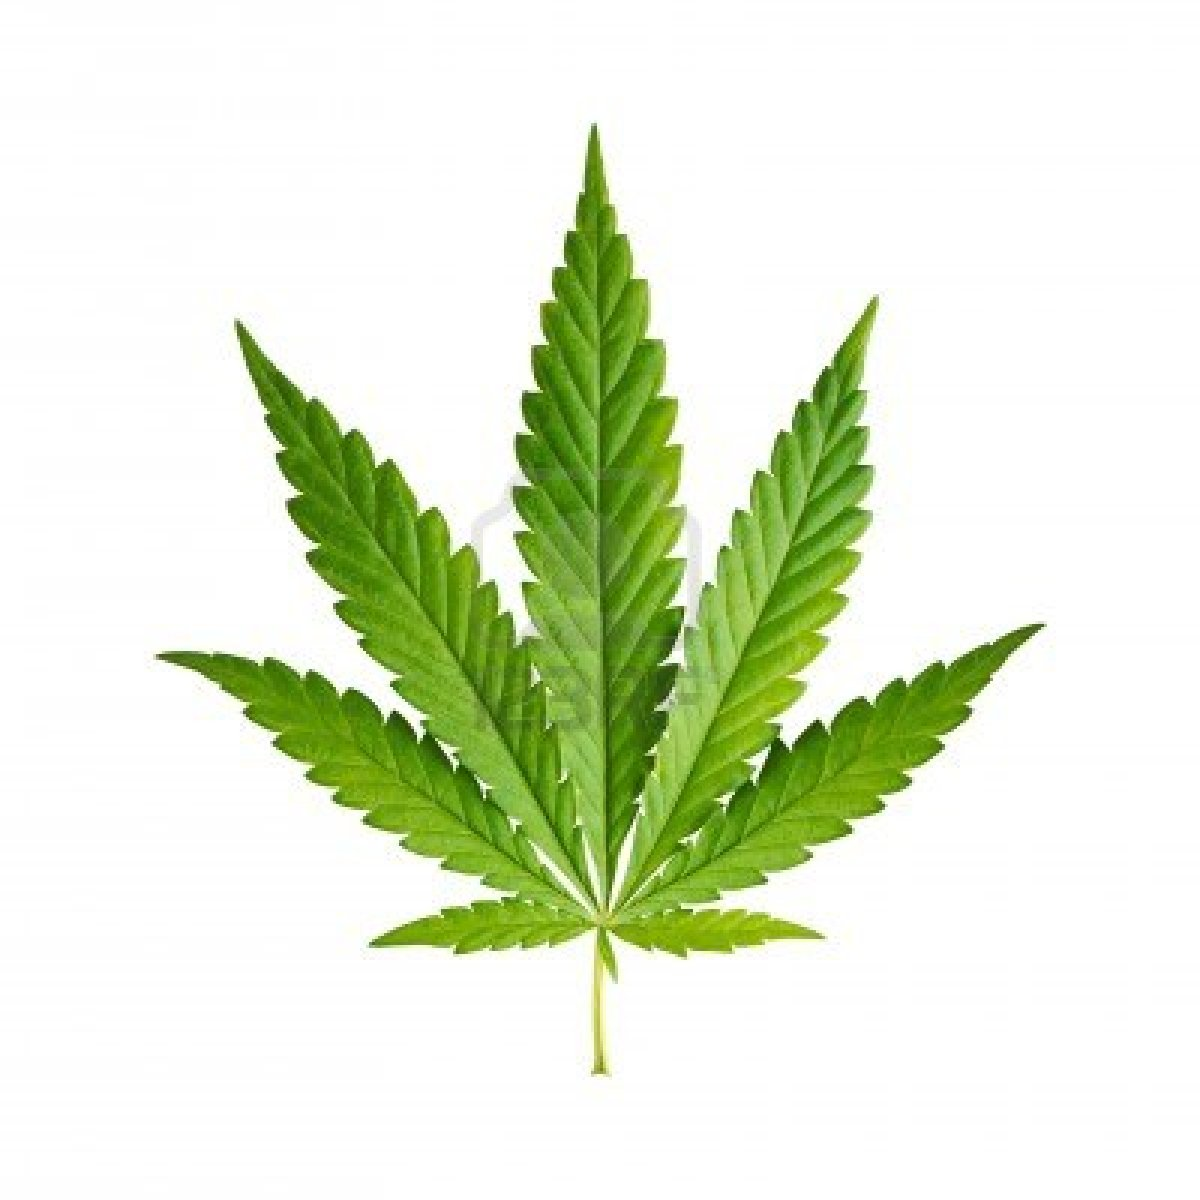 the classification of cannabis under the We contend that the classification of cannabis under the single convention is an anomaly and that the medical value of a substance must be determined by science.